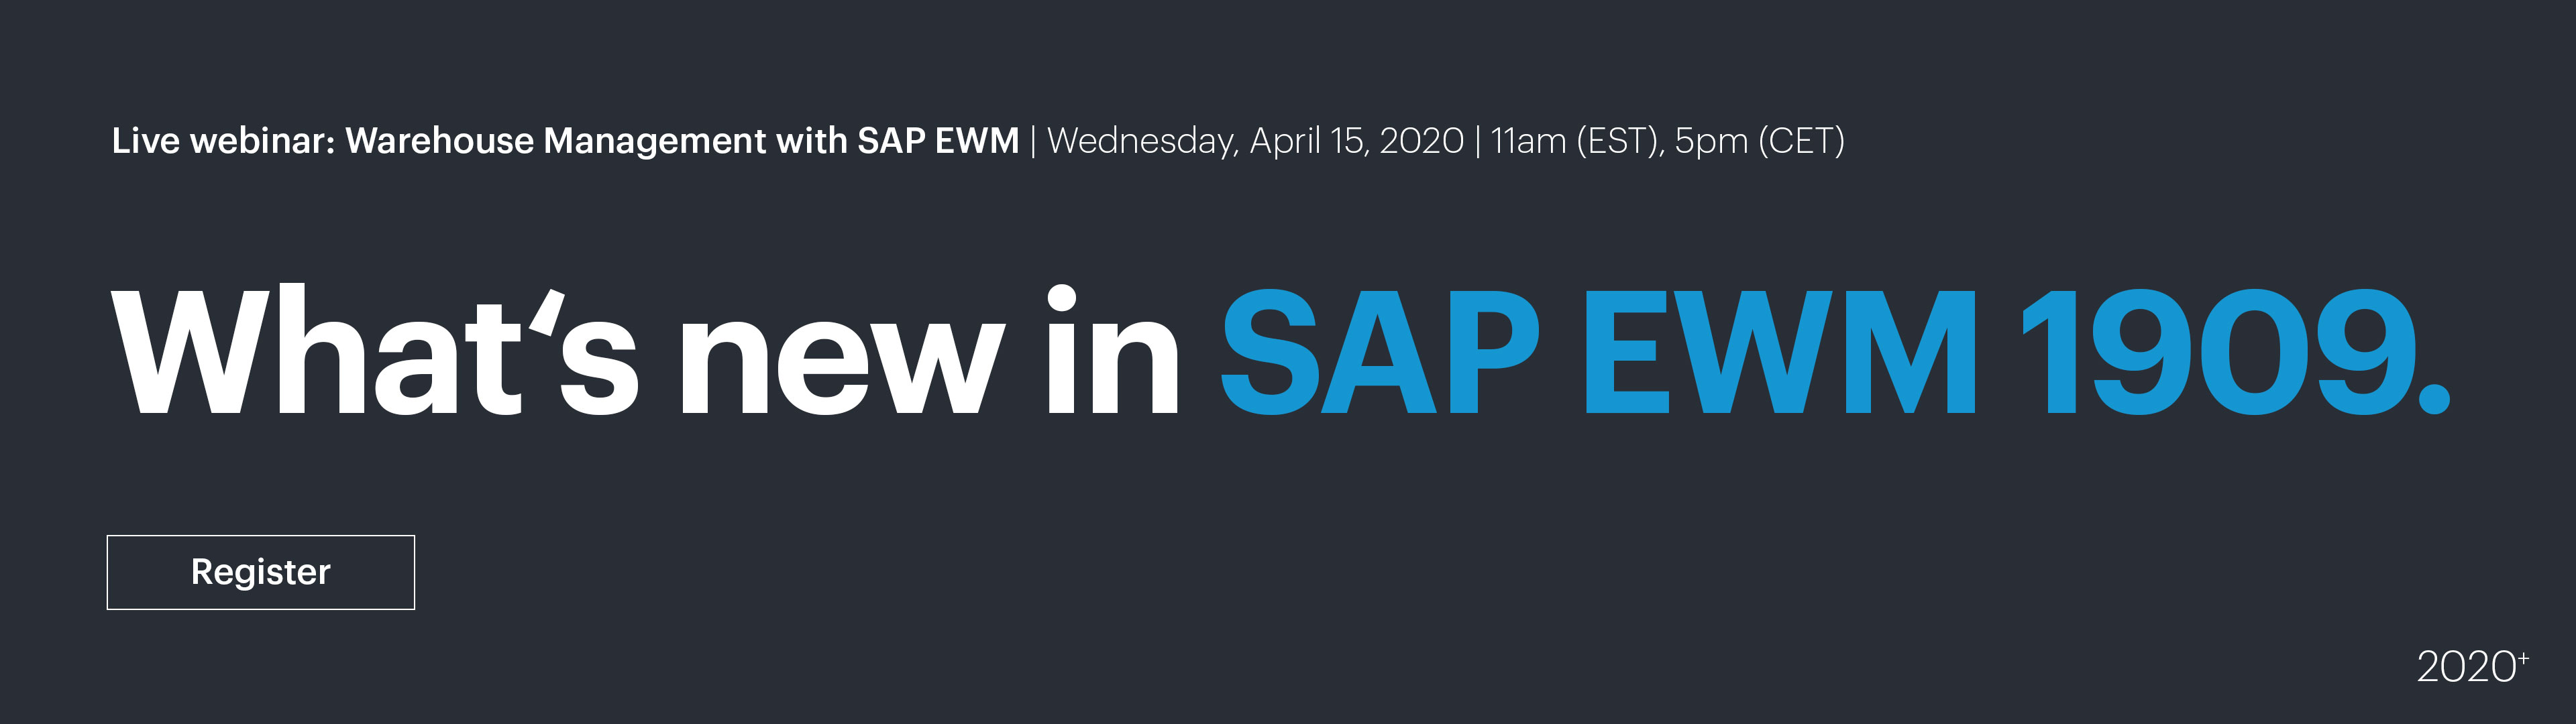 Live Webinar: Warehouse Management with SAP EWM | westernacher-consulting.com